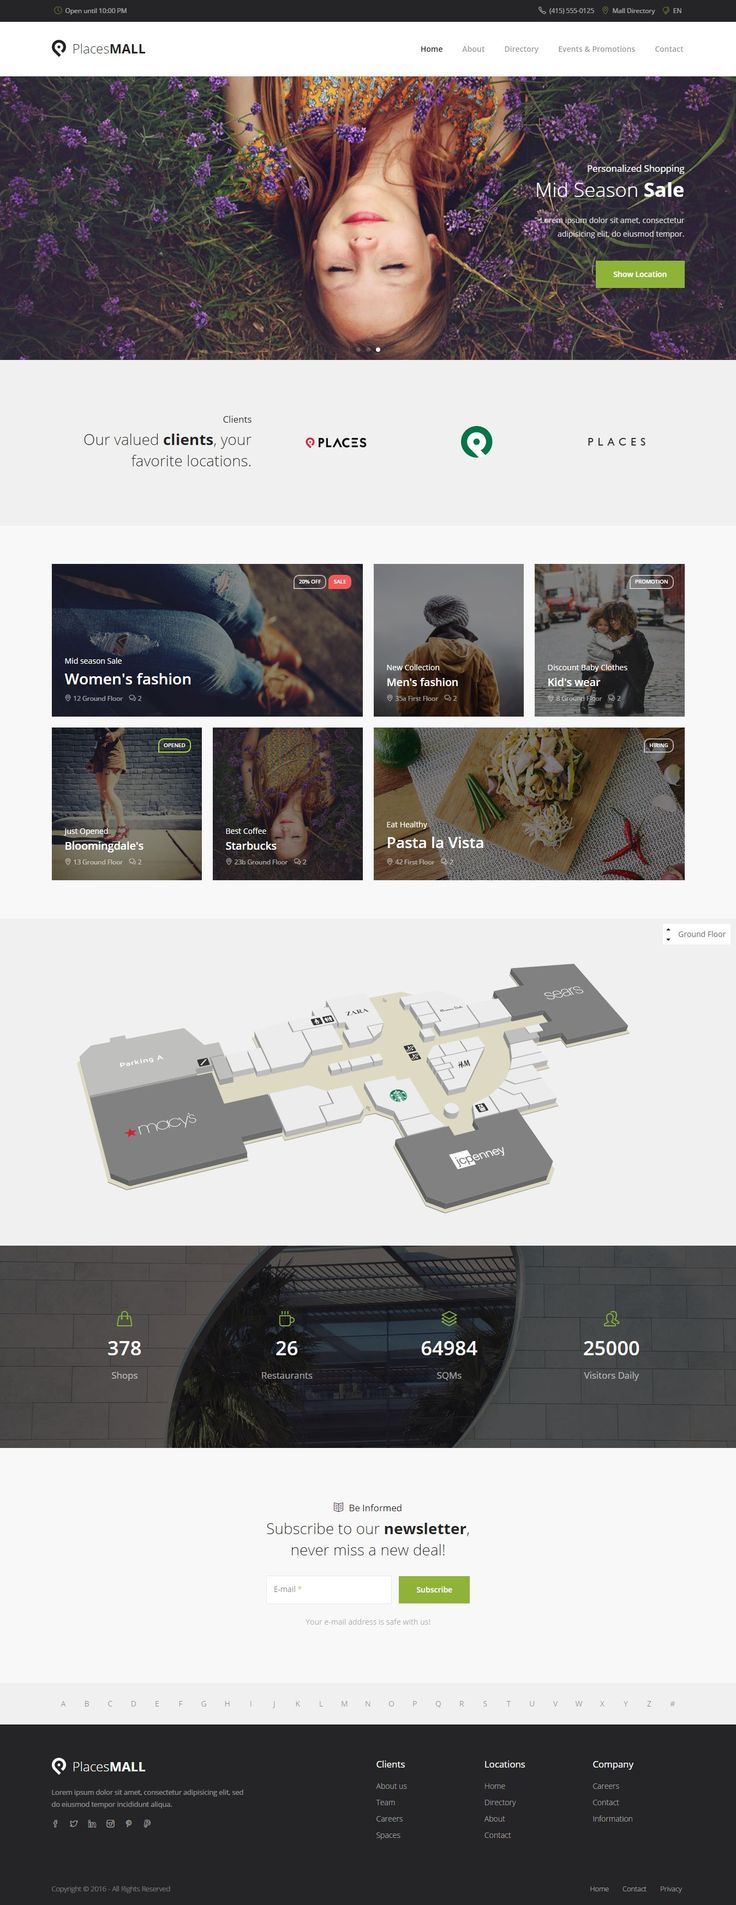 Places custom interactive map html5 template